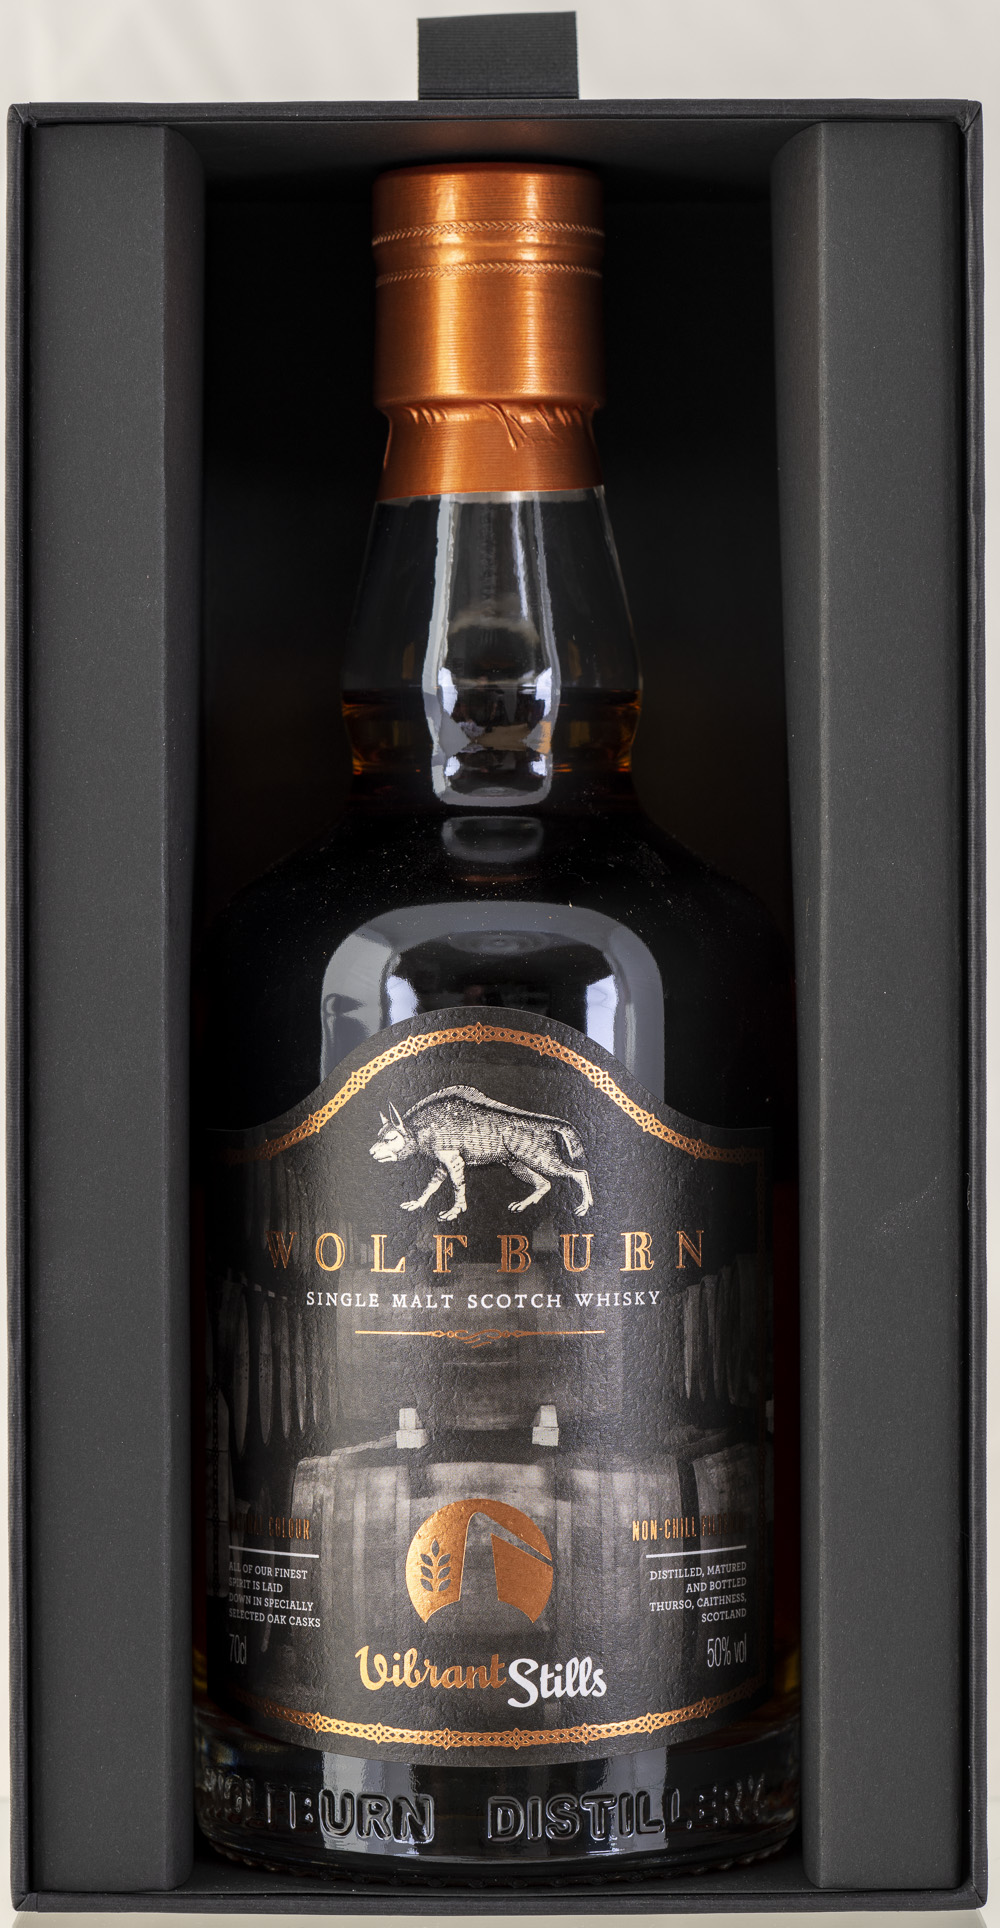 Billede: PHC_2207 - Wolfburn Vibrant Stills 4 years - bottle in box.jpg